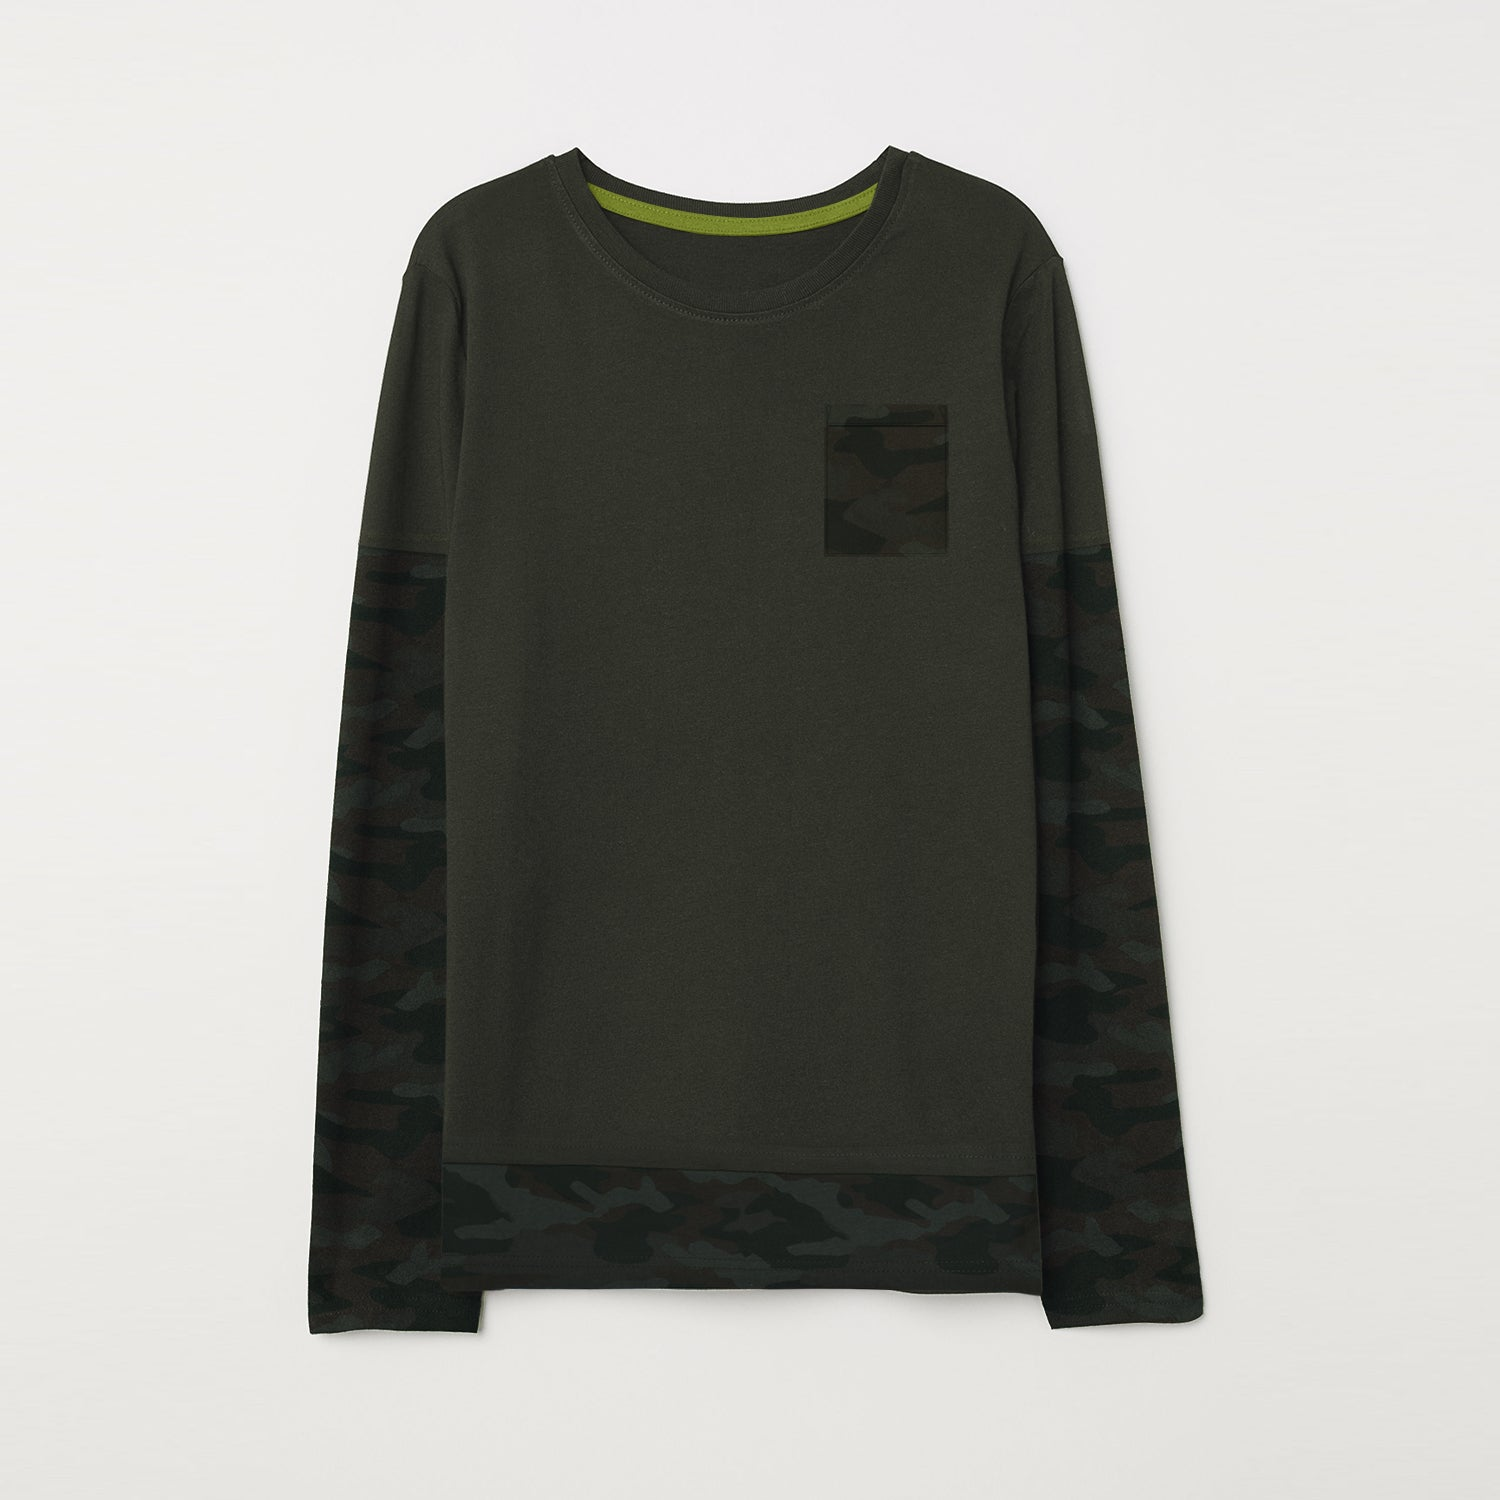 NEXT Single Jersey Long Sleeve Tee Shirt For Kids-Dark Olive with Camouflage-BE9345